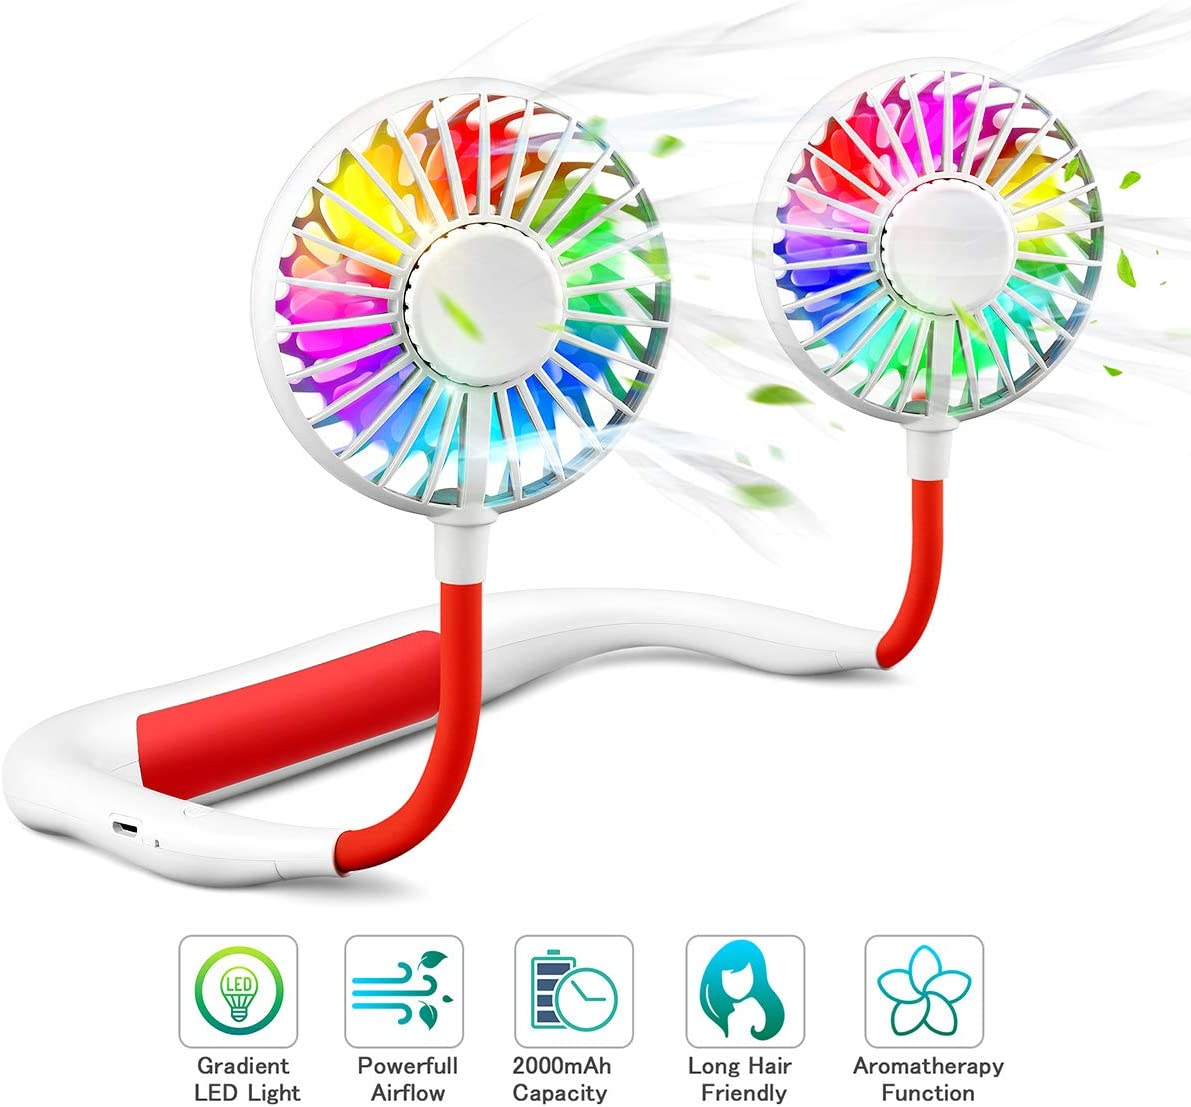 Personal fan, Anyfun Hands Free Neck Fan USB Portable Fan Rechargeable with Colorful LED Flashing,2000mAh Battery,360° Rotation,Lower Noise but Strong Airflow for Sport Travel Fishing Camping (White)